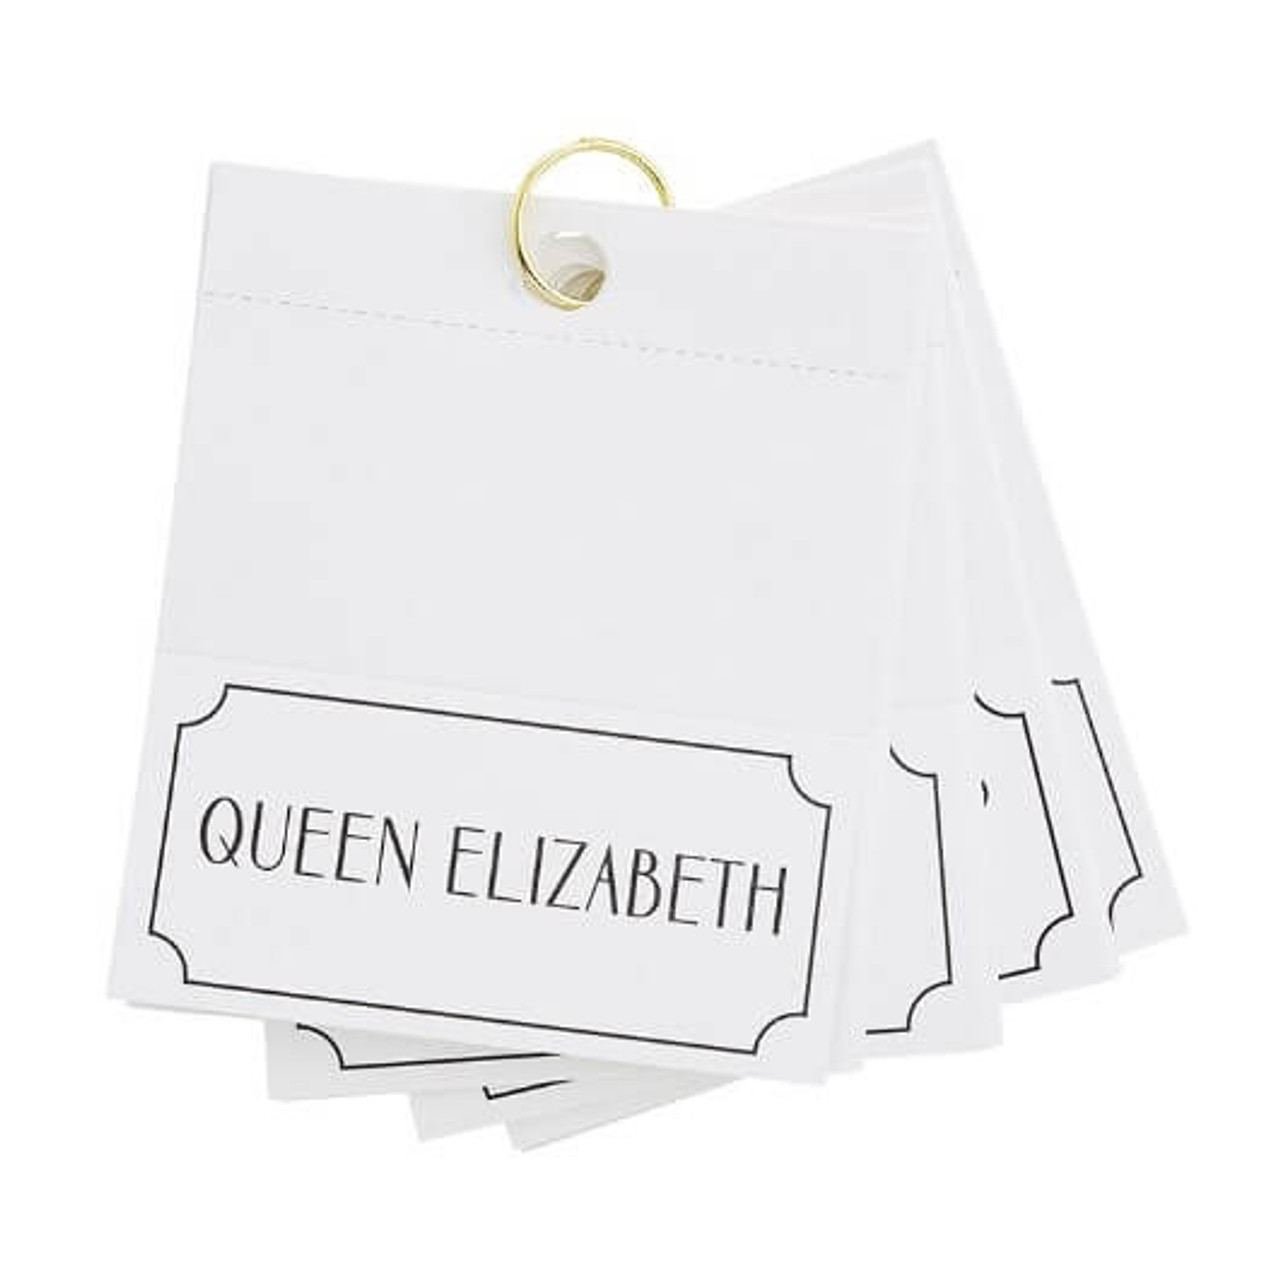 """Bring some laughs and regal glamour to your next dinner party with a set of royalty place cards. Folded cards measure 2 3/8"""" H x 4 3/4"""" W.  This set of 24 cards features some of the most recognized royal names including: Queen Elizabeth, Diana, Princes of Wales, Charles, Prince of Wales, Sarah, Duchess of York, Camilla, Duchess of Cornwall, Vice Admiral Sir Timothy Laurence, Prince William, Duke of Cambridge, Autumn Phillips, Mike Tindall, Lady Louise Windsor, Princess Beatrice of York, Princess Eugenie of York, Prince Philip, Duke of Edinburgh, Prince Edward, Earl of Wesex, Meghan, Duchess of Sussex"""